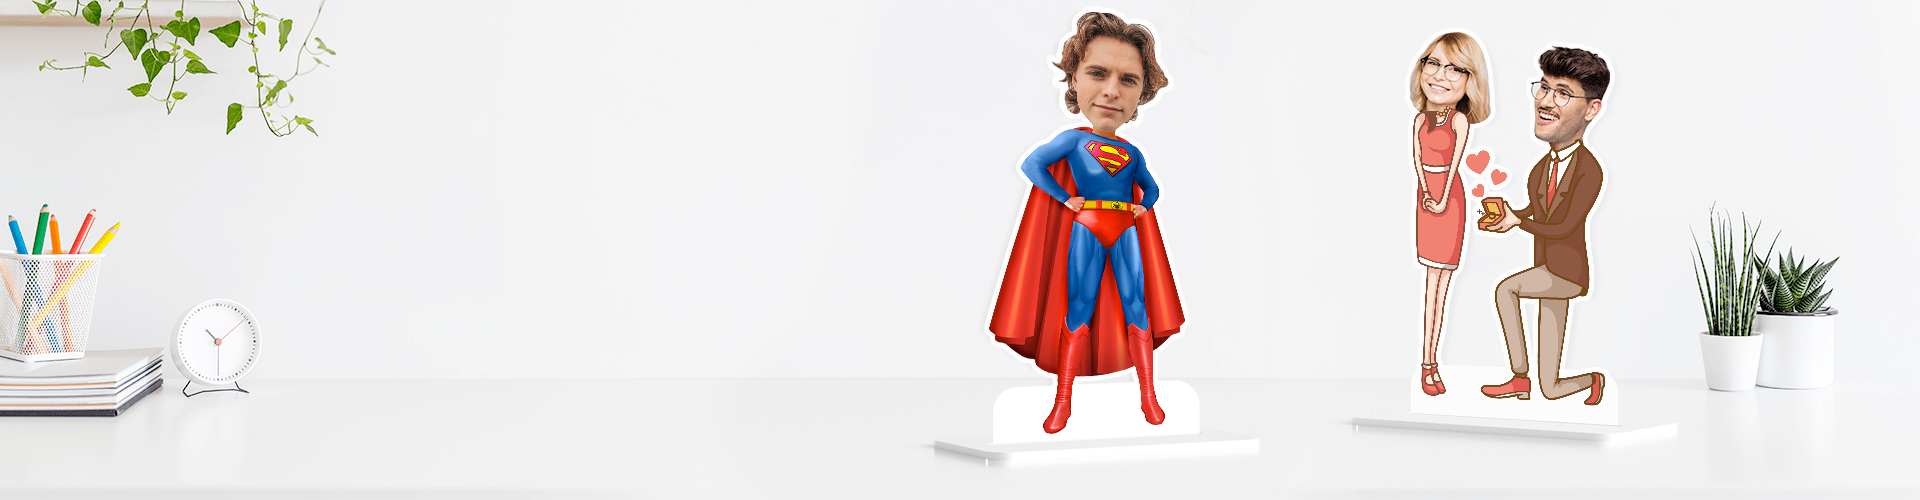 Caricature Photo Stand